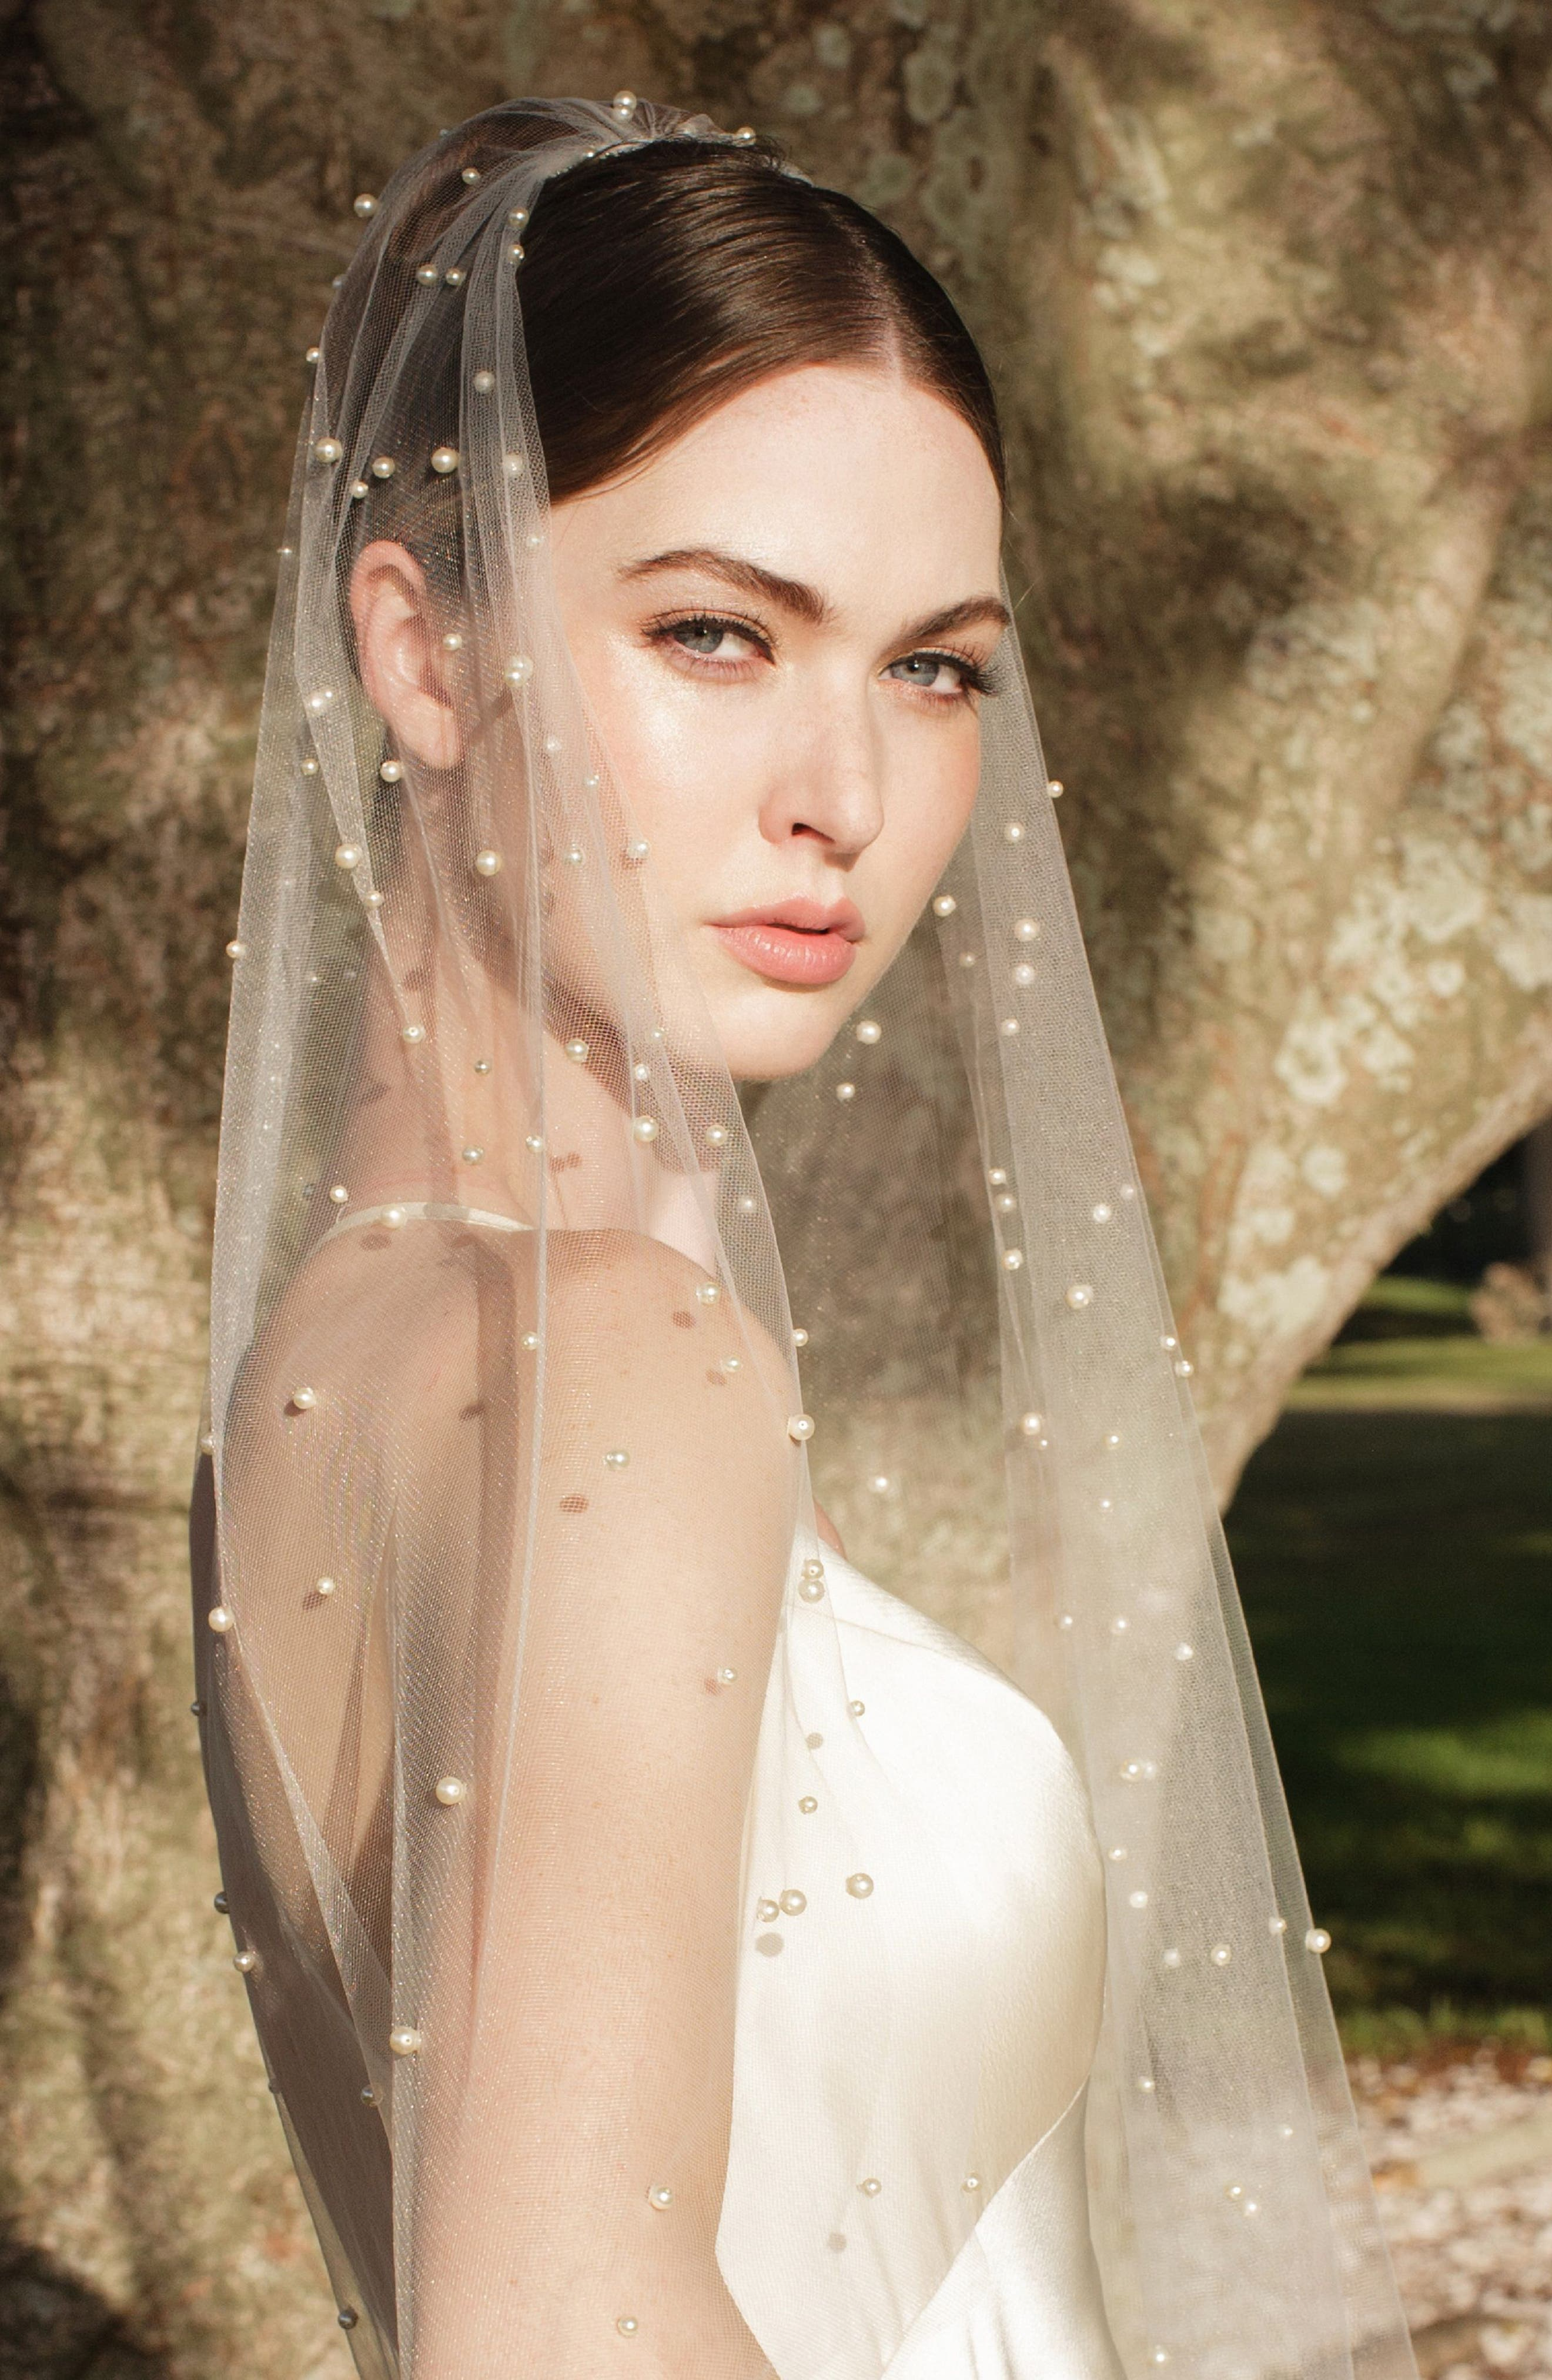 Abracadabra Swarovski Imitation Pearl Chapel Veil,                             Alternate thumbnail 2, color,                             LIGHT IVORY